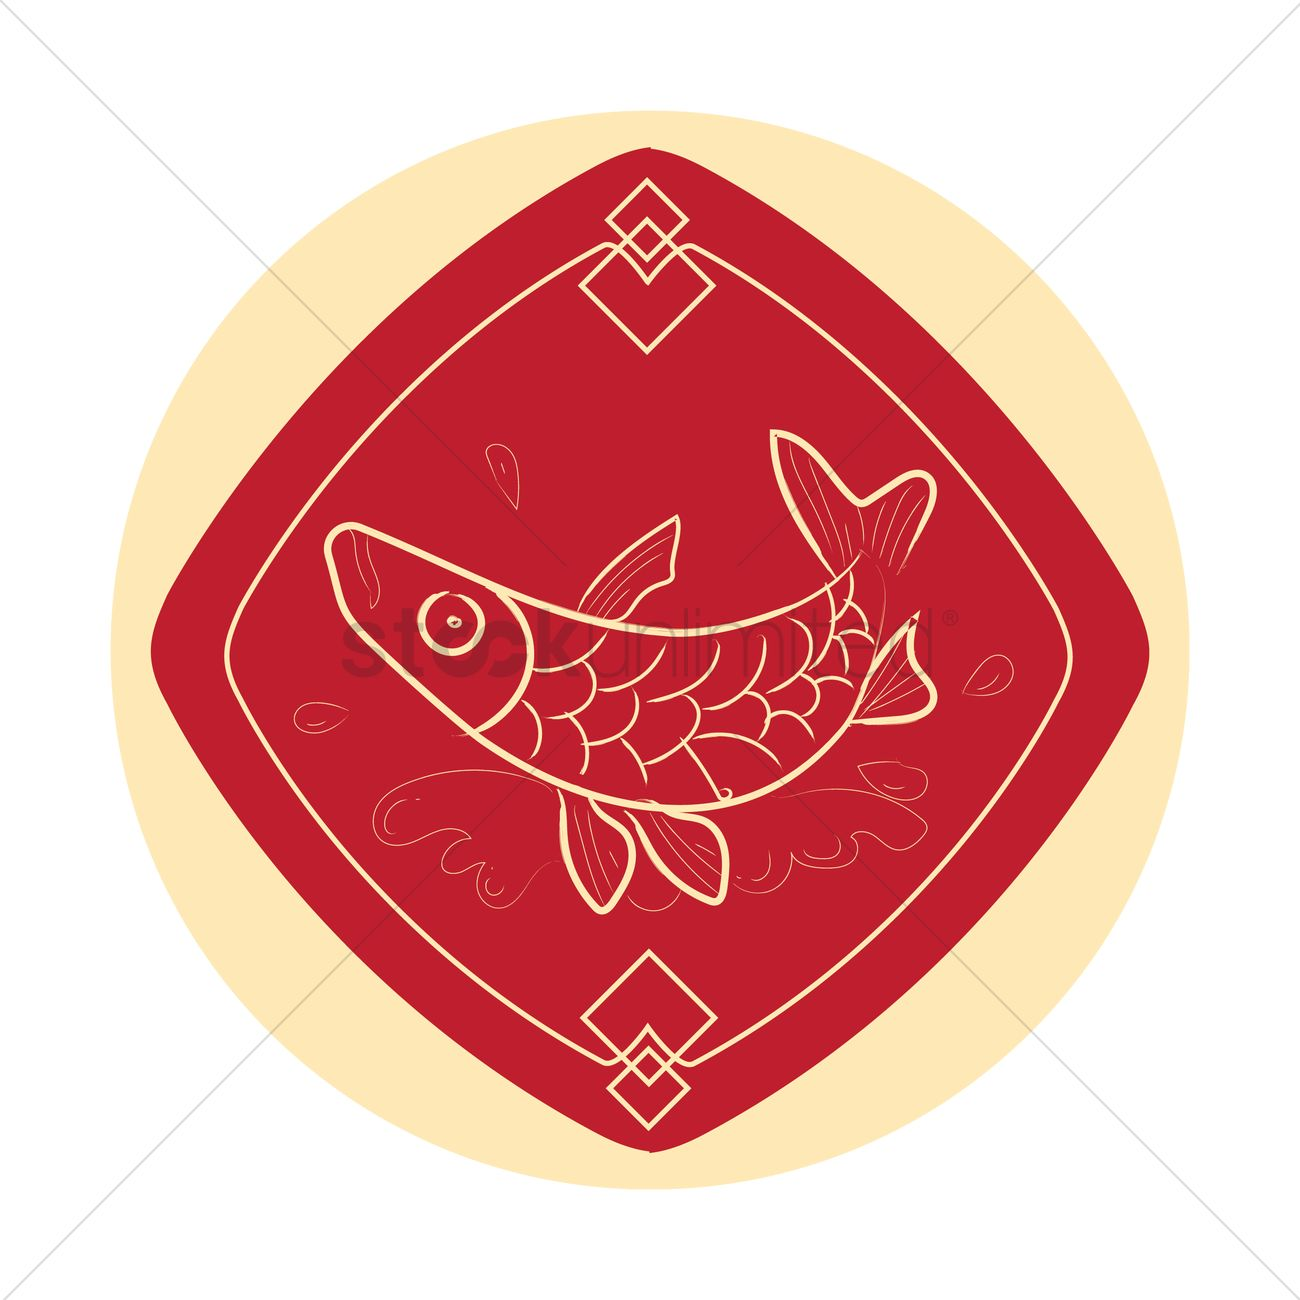 Chinese fish symbol vector image 1378704 stockunlimited chinese fish symbol vector graphic buycottarizona Gallery